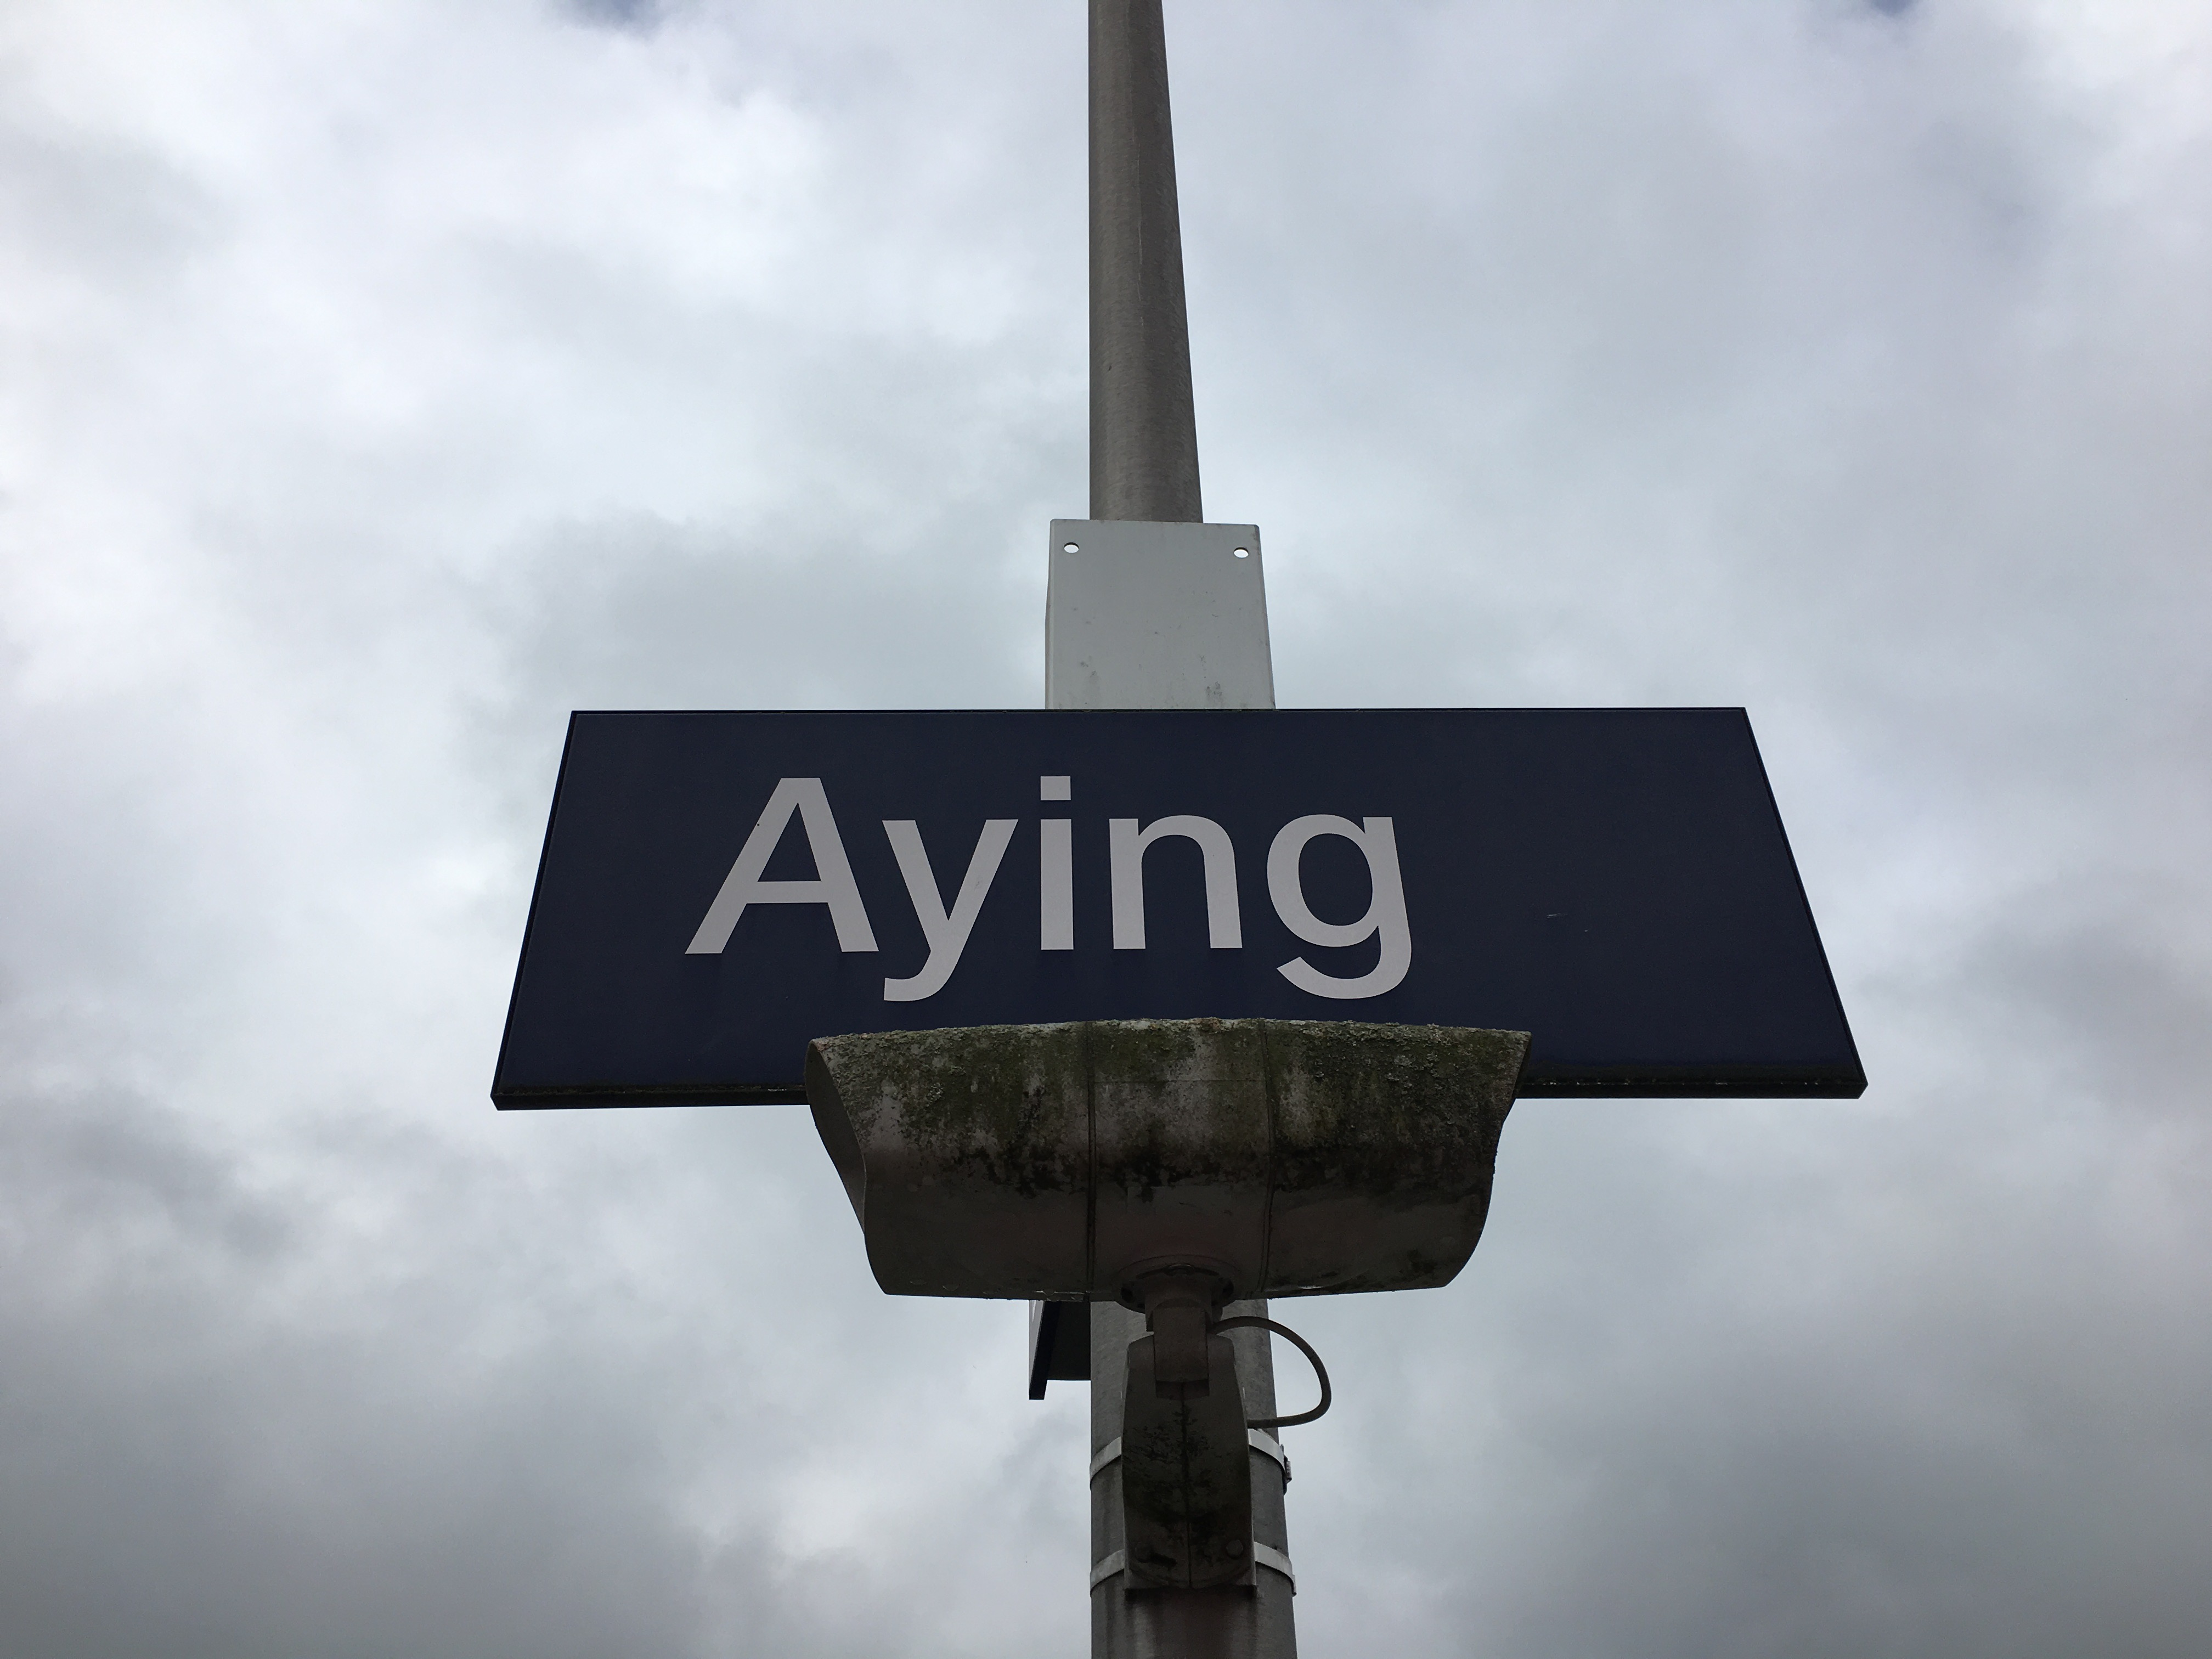 Aying S-Bahn stop.